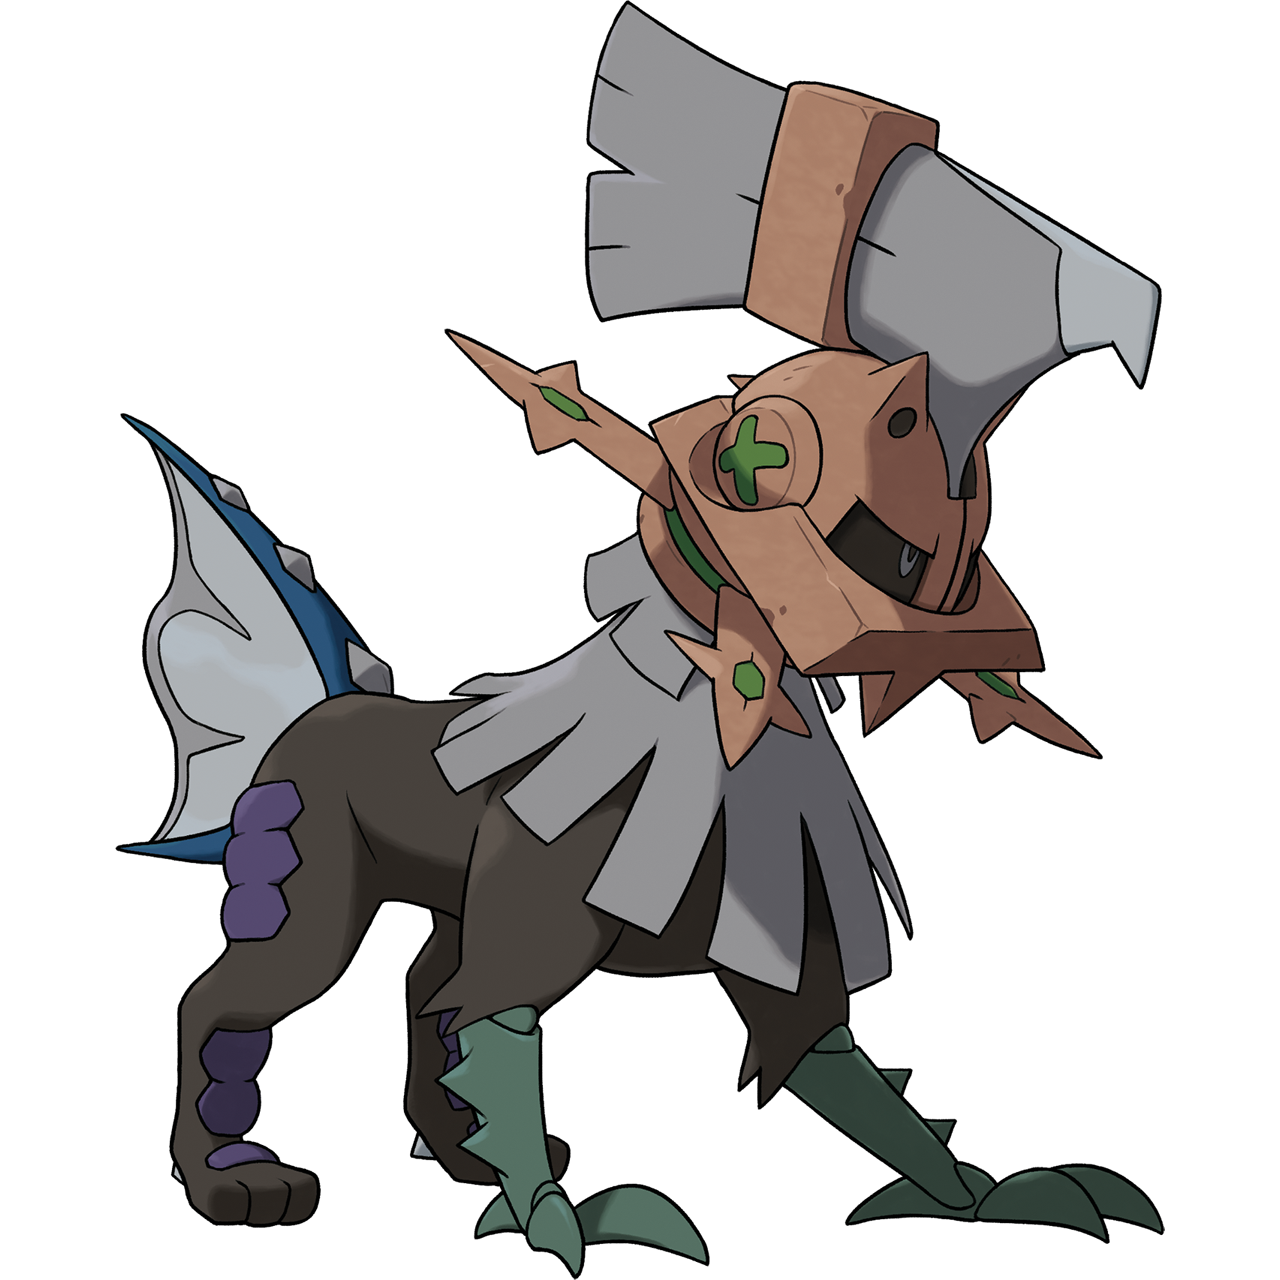 Official Type: Null art